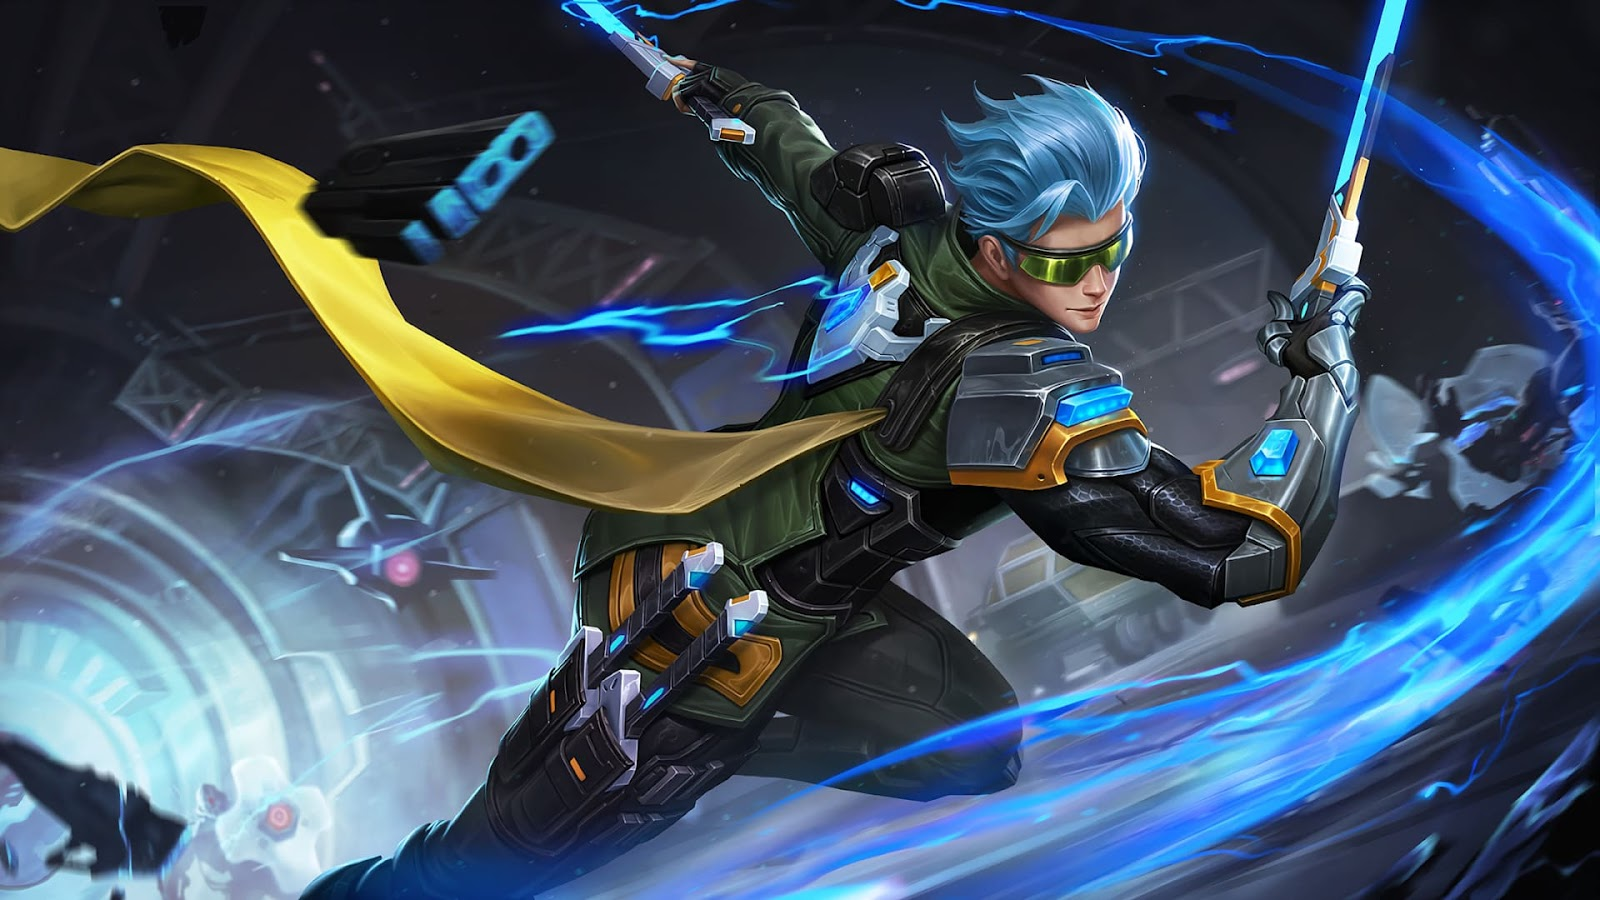 Wallpaper Gusion Cyber Ops Skin Mobile Legends HD for PC